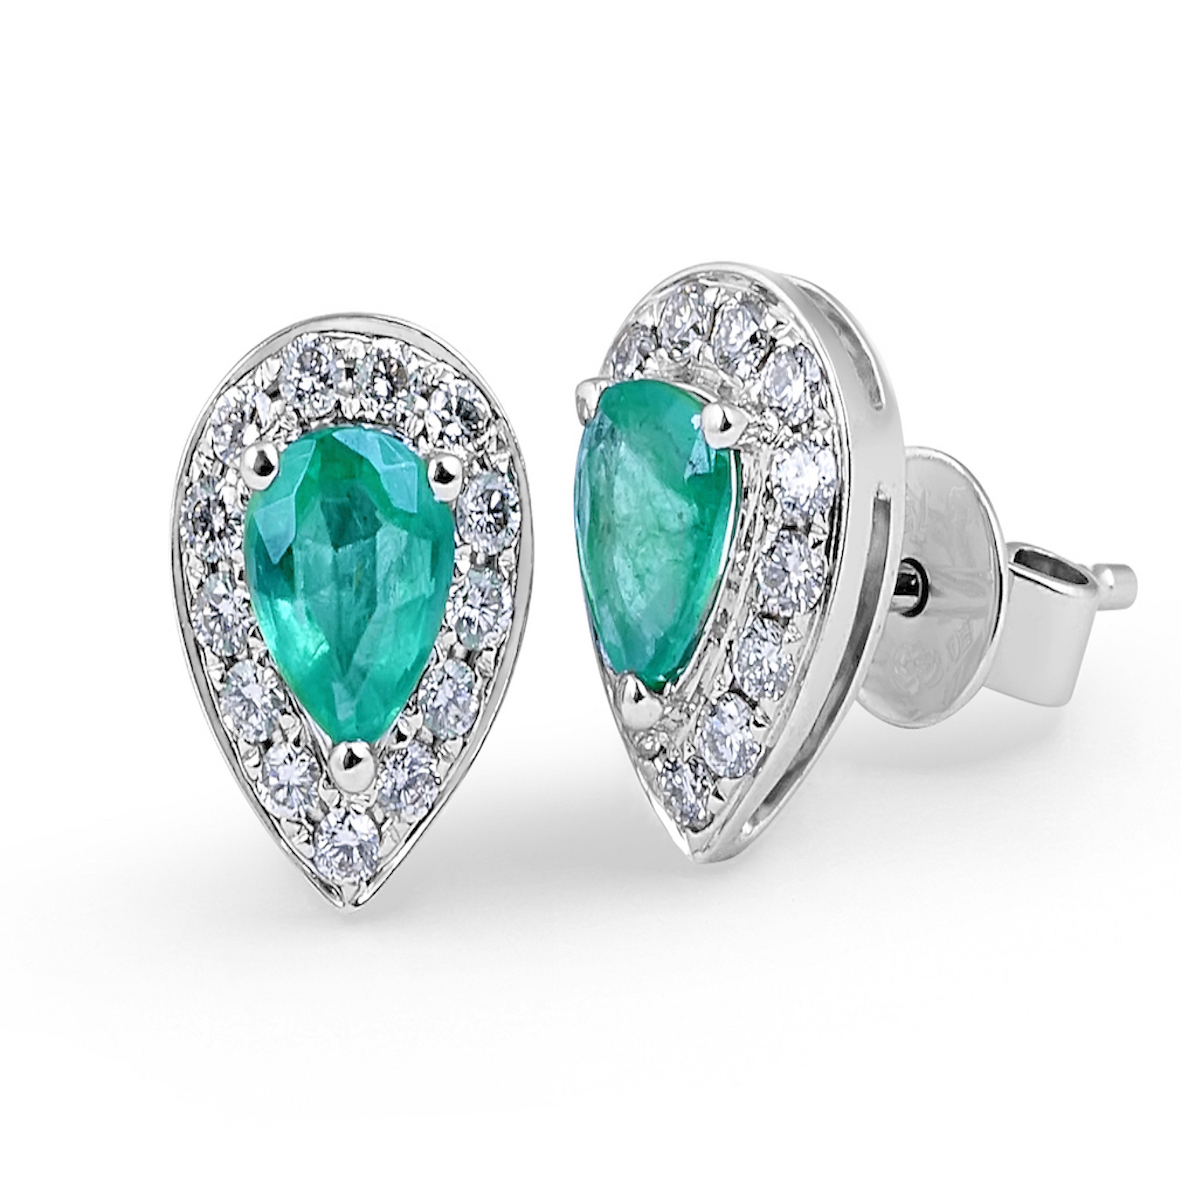 Emerald Diamond Halo Stud Earrings in 18 Karat White Gold